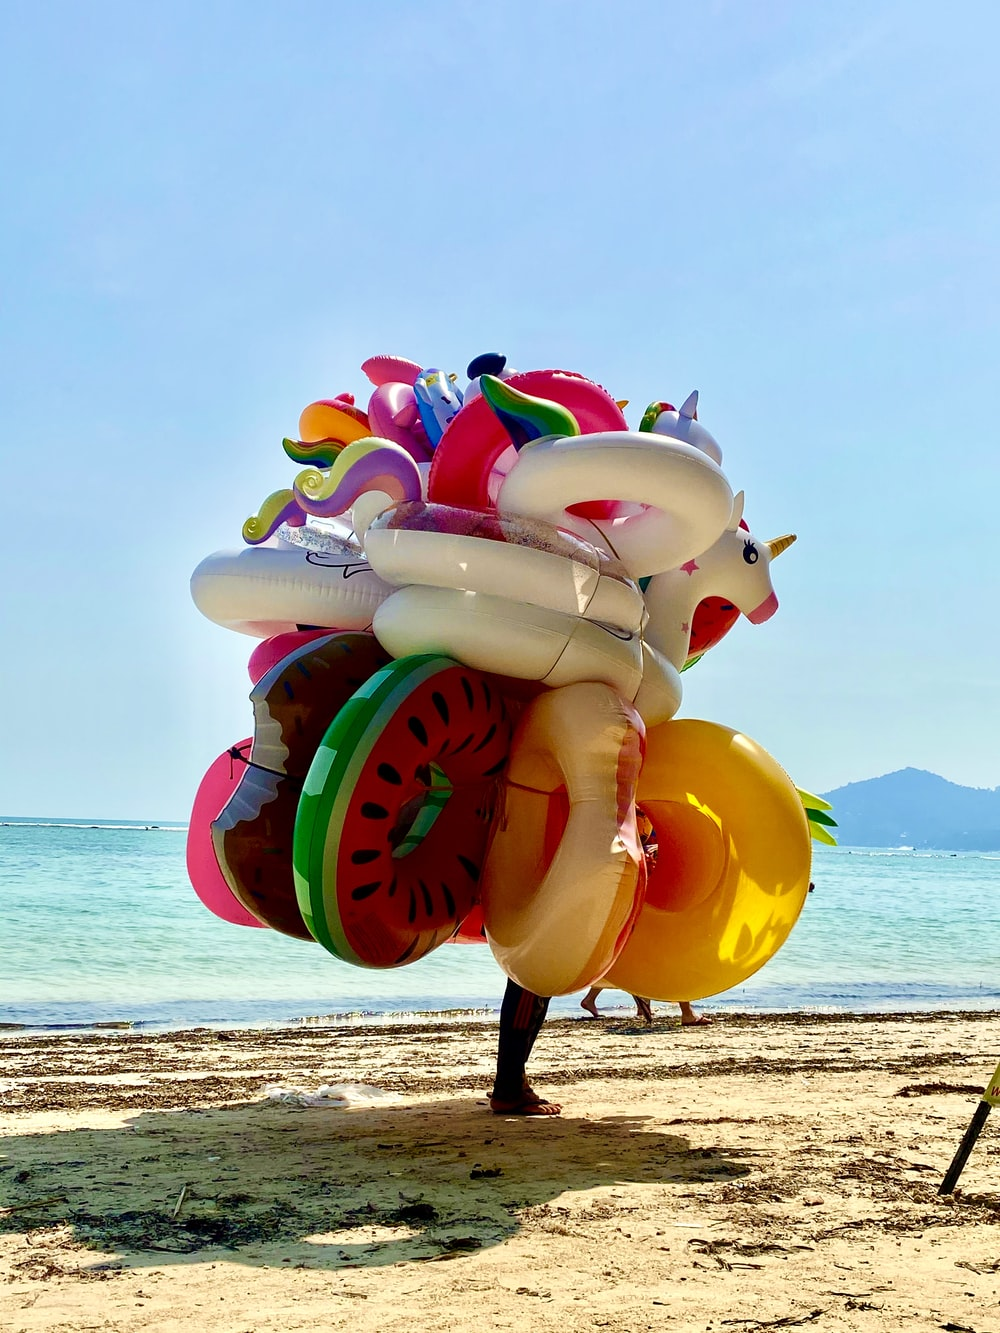 white blue and red inflatable inflatable balloon on beach shore during daytime